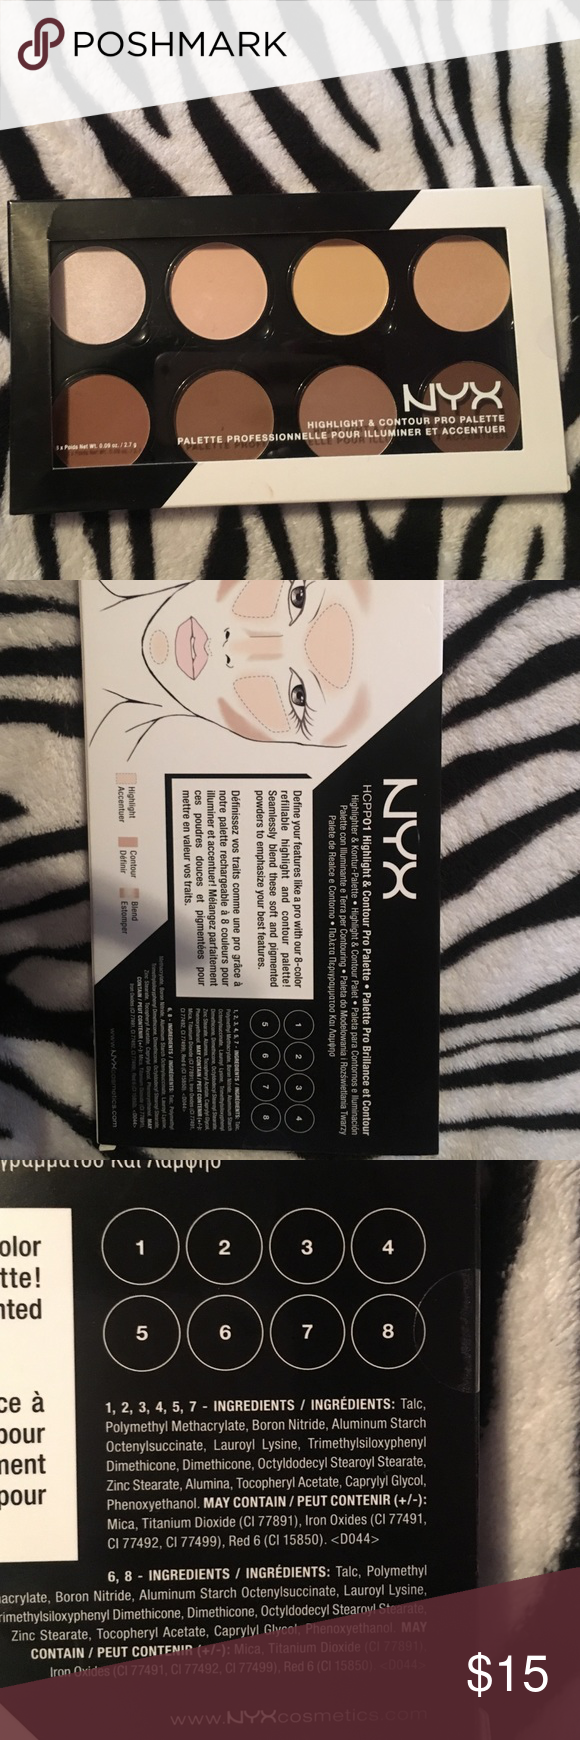 NYX Highlight & Contour Palette Great highlight and